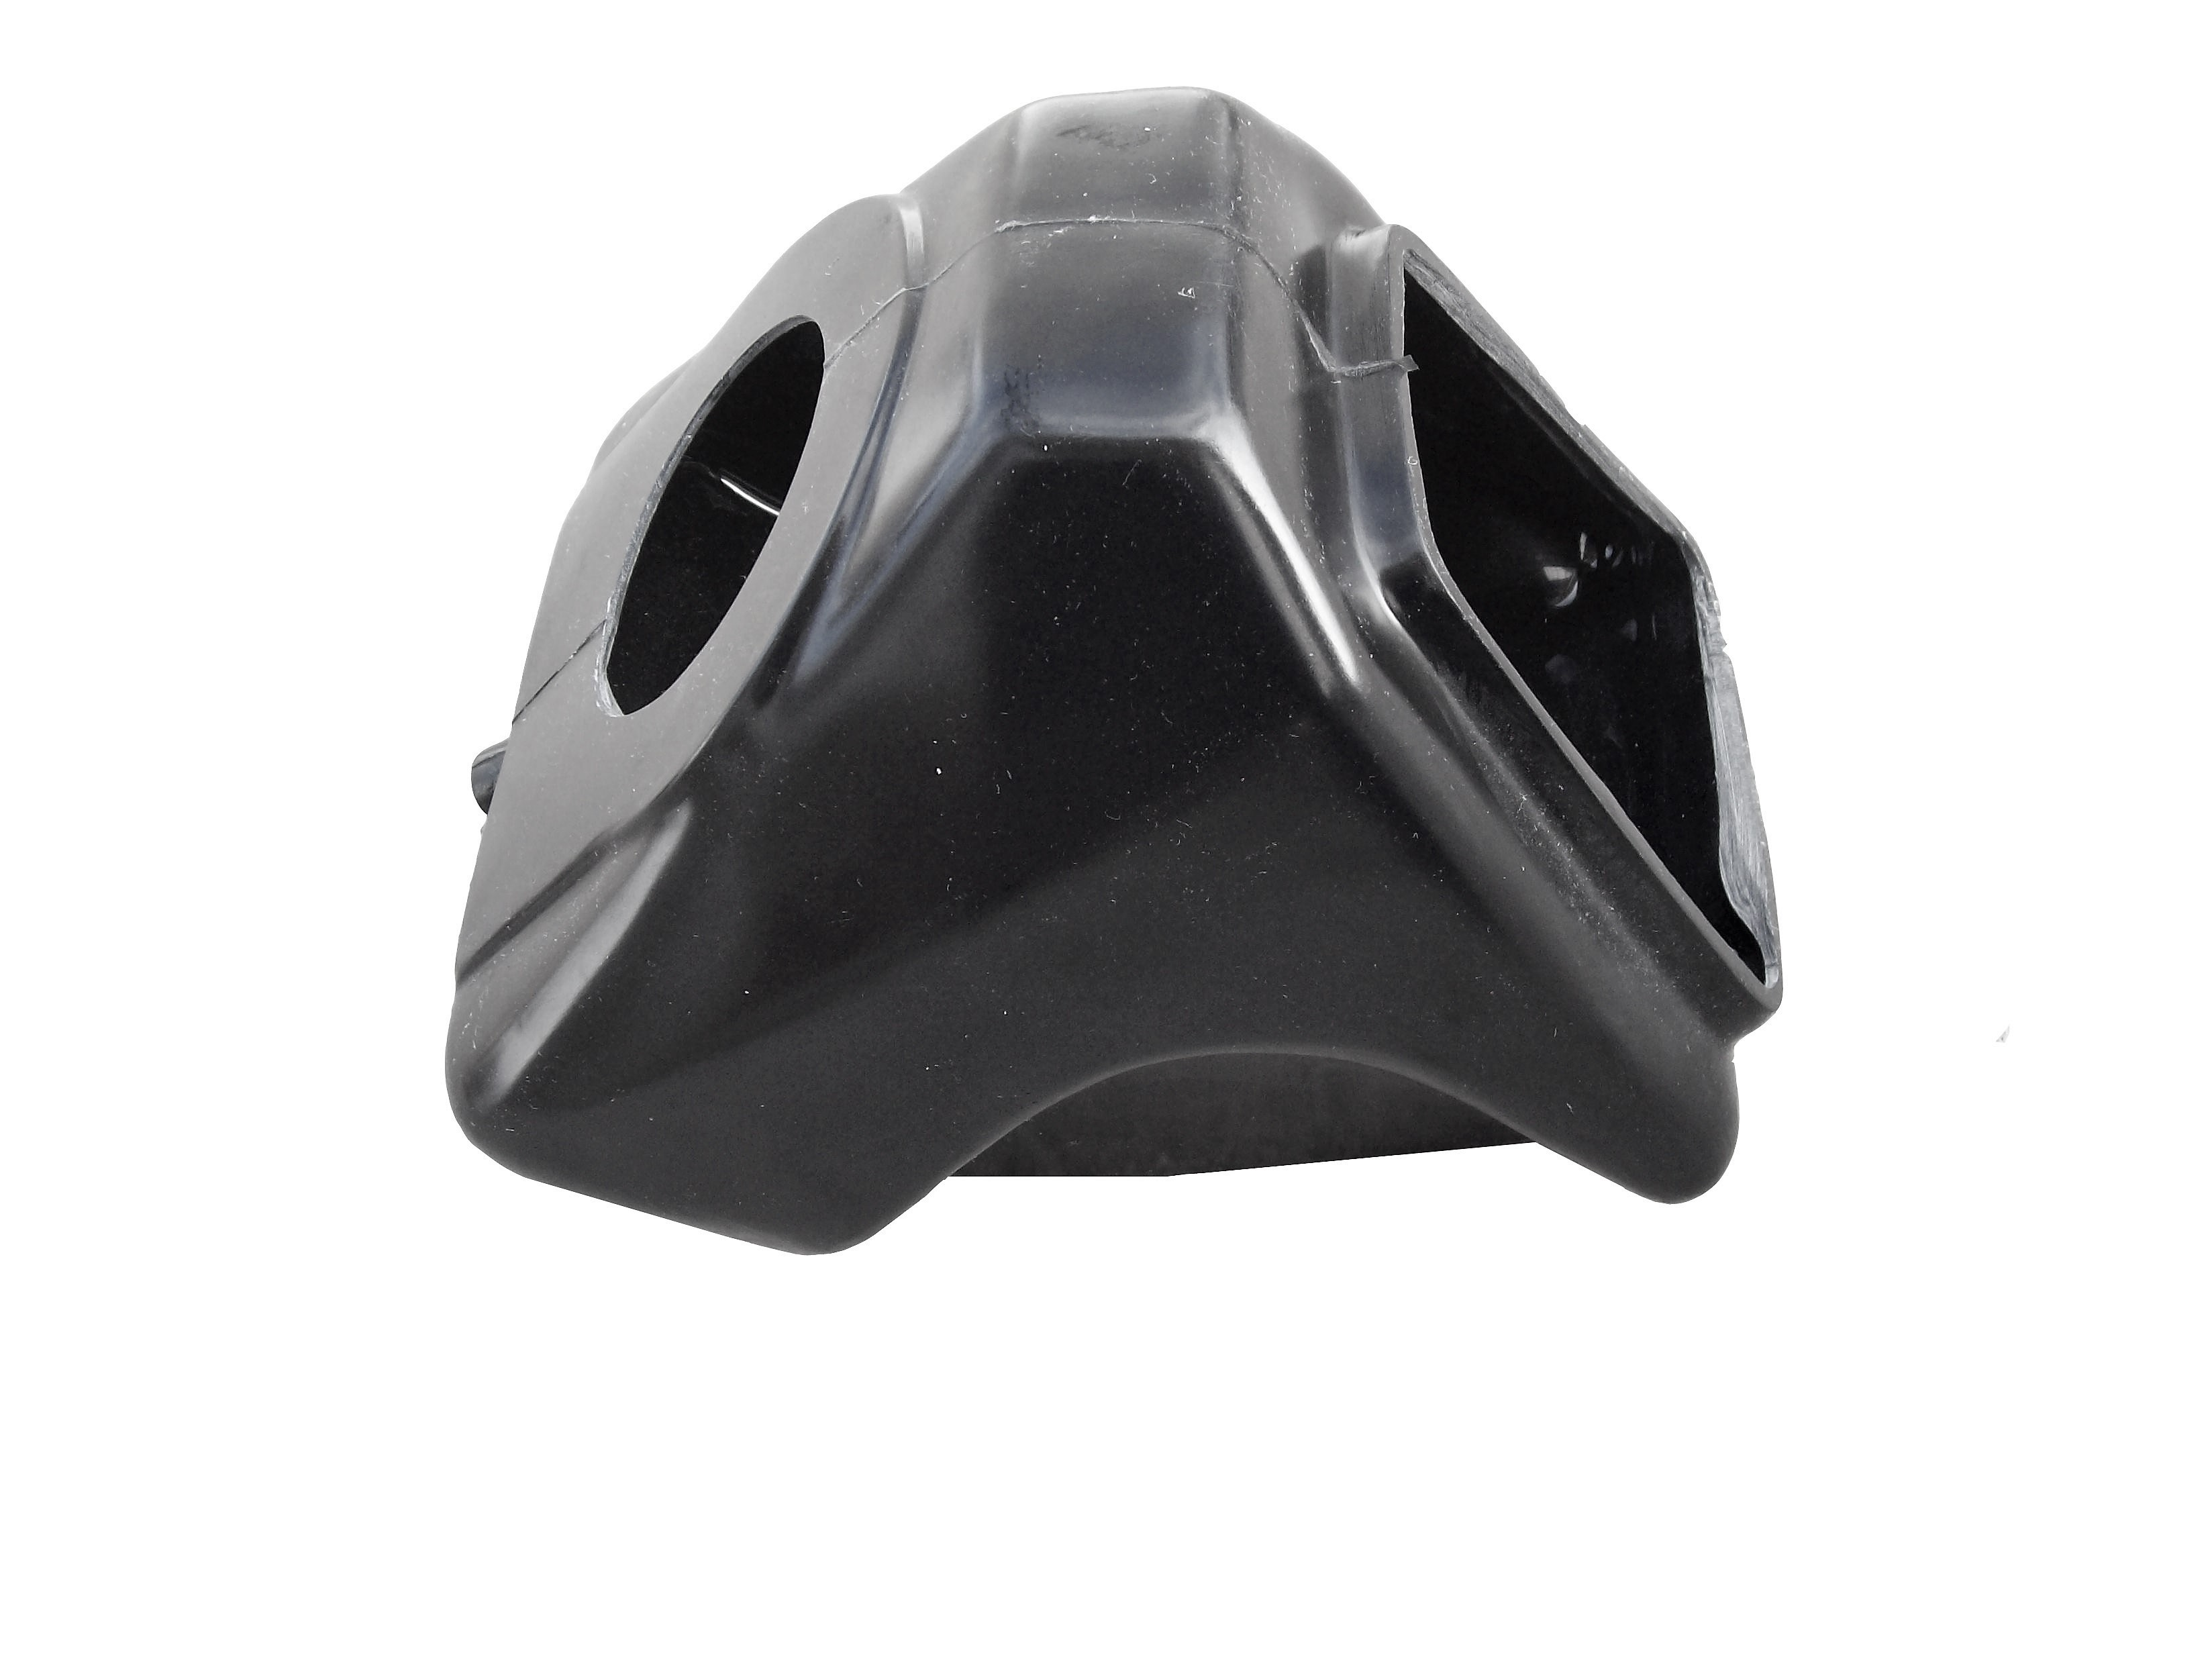 New Reproduction Polyurethane Airbox that fits the 1976 1977 Maico AW 250 400